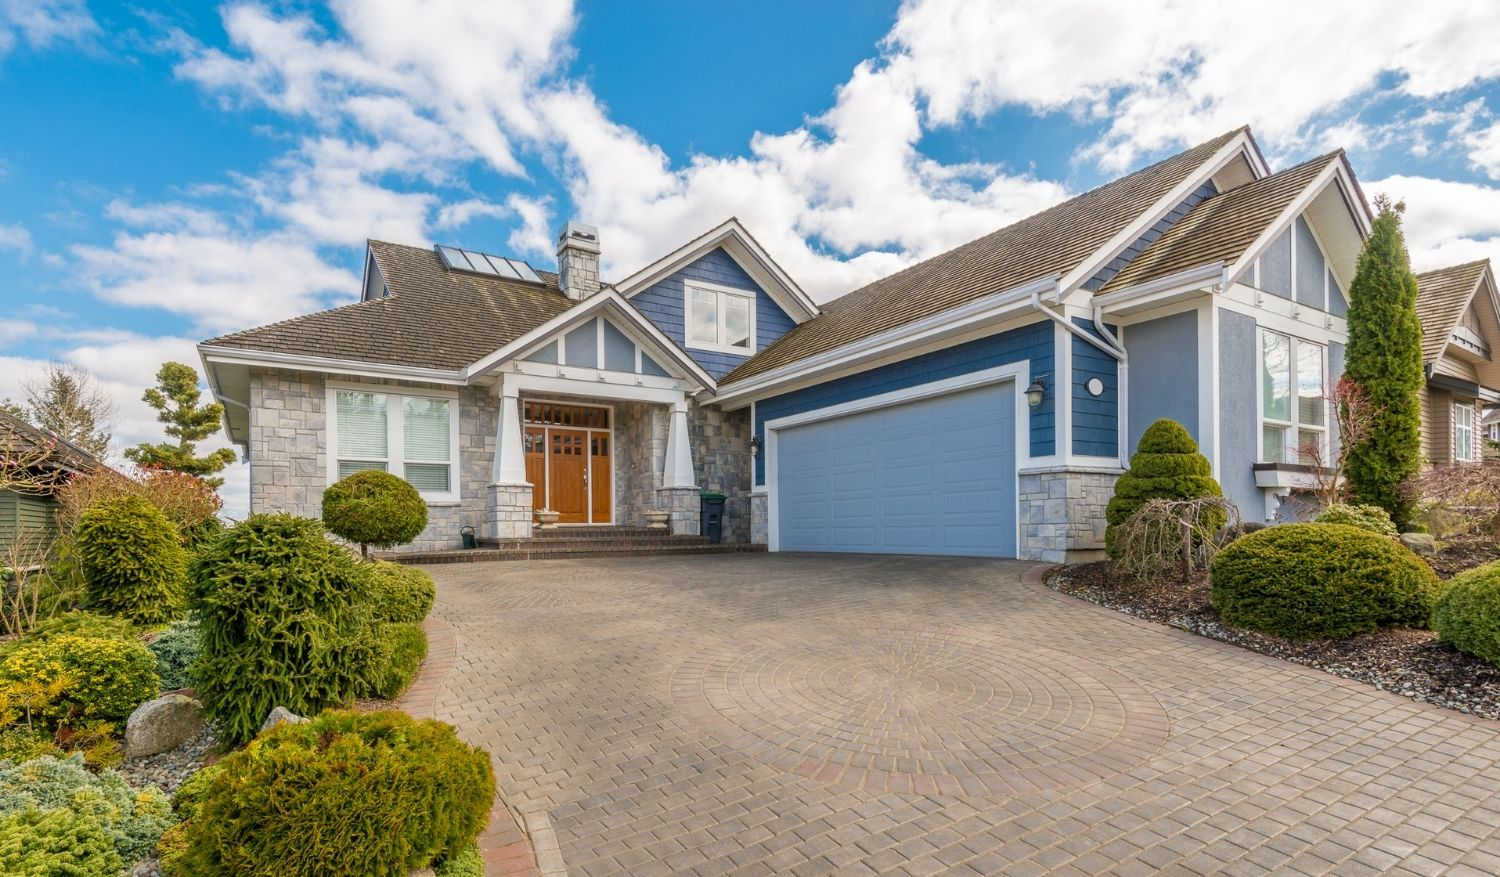 A home within a potential home buyer's budget, as having a budget is one of the top tips for buying a home in this, or any, market